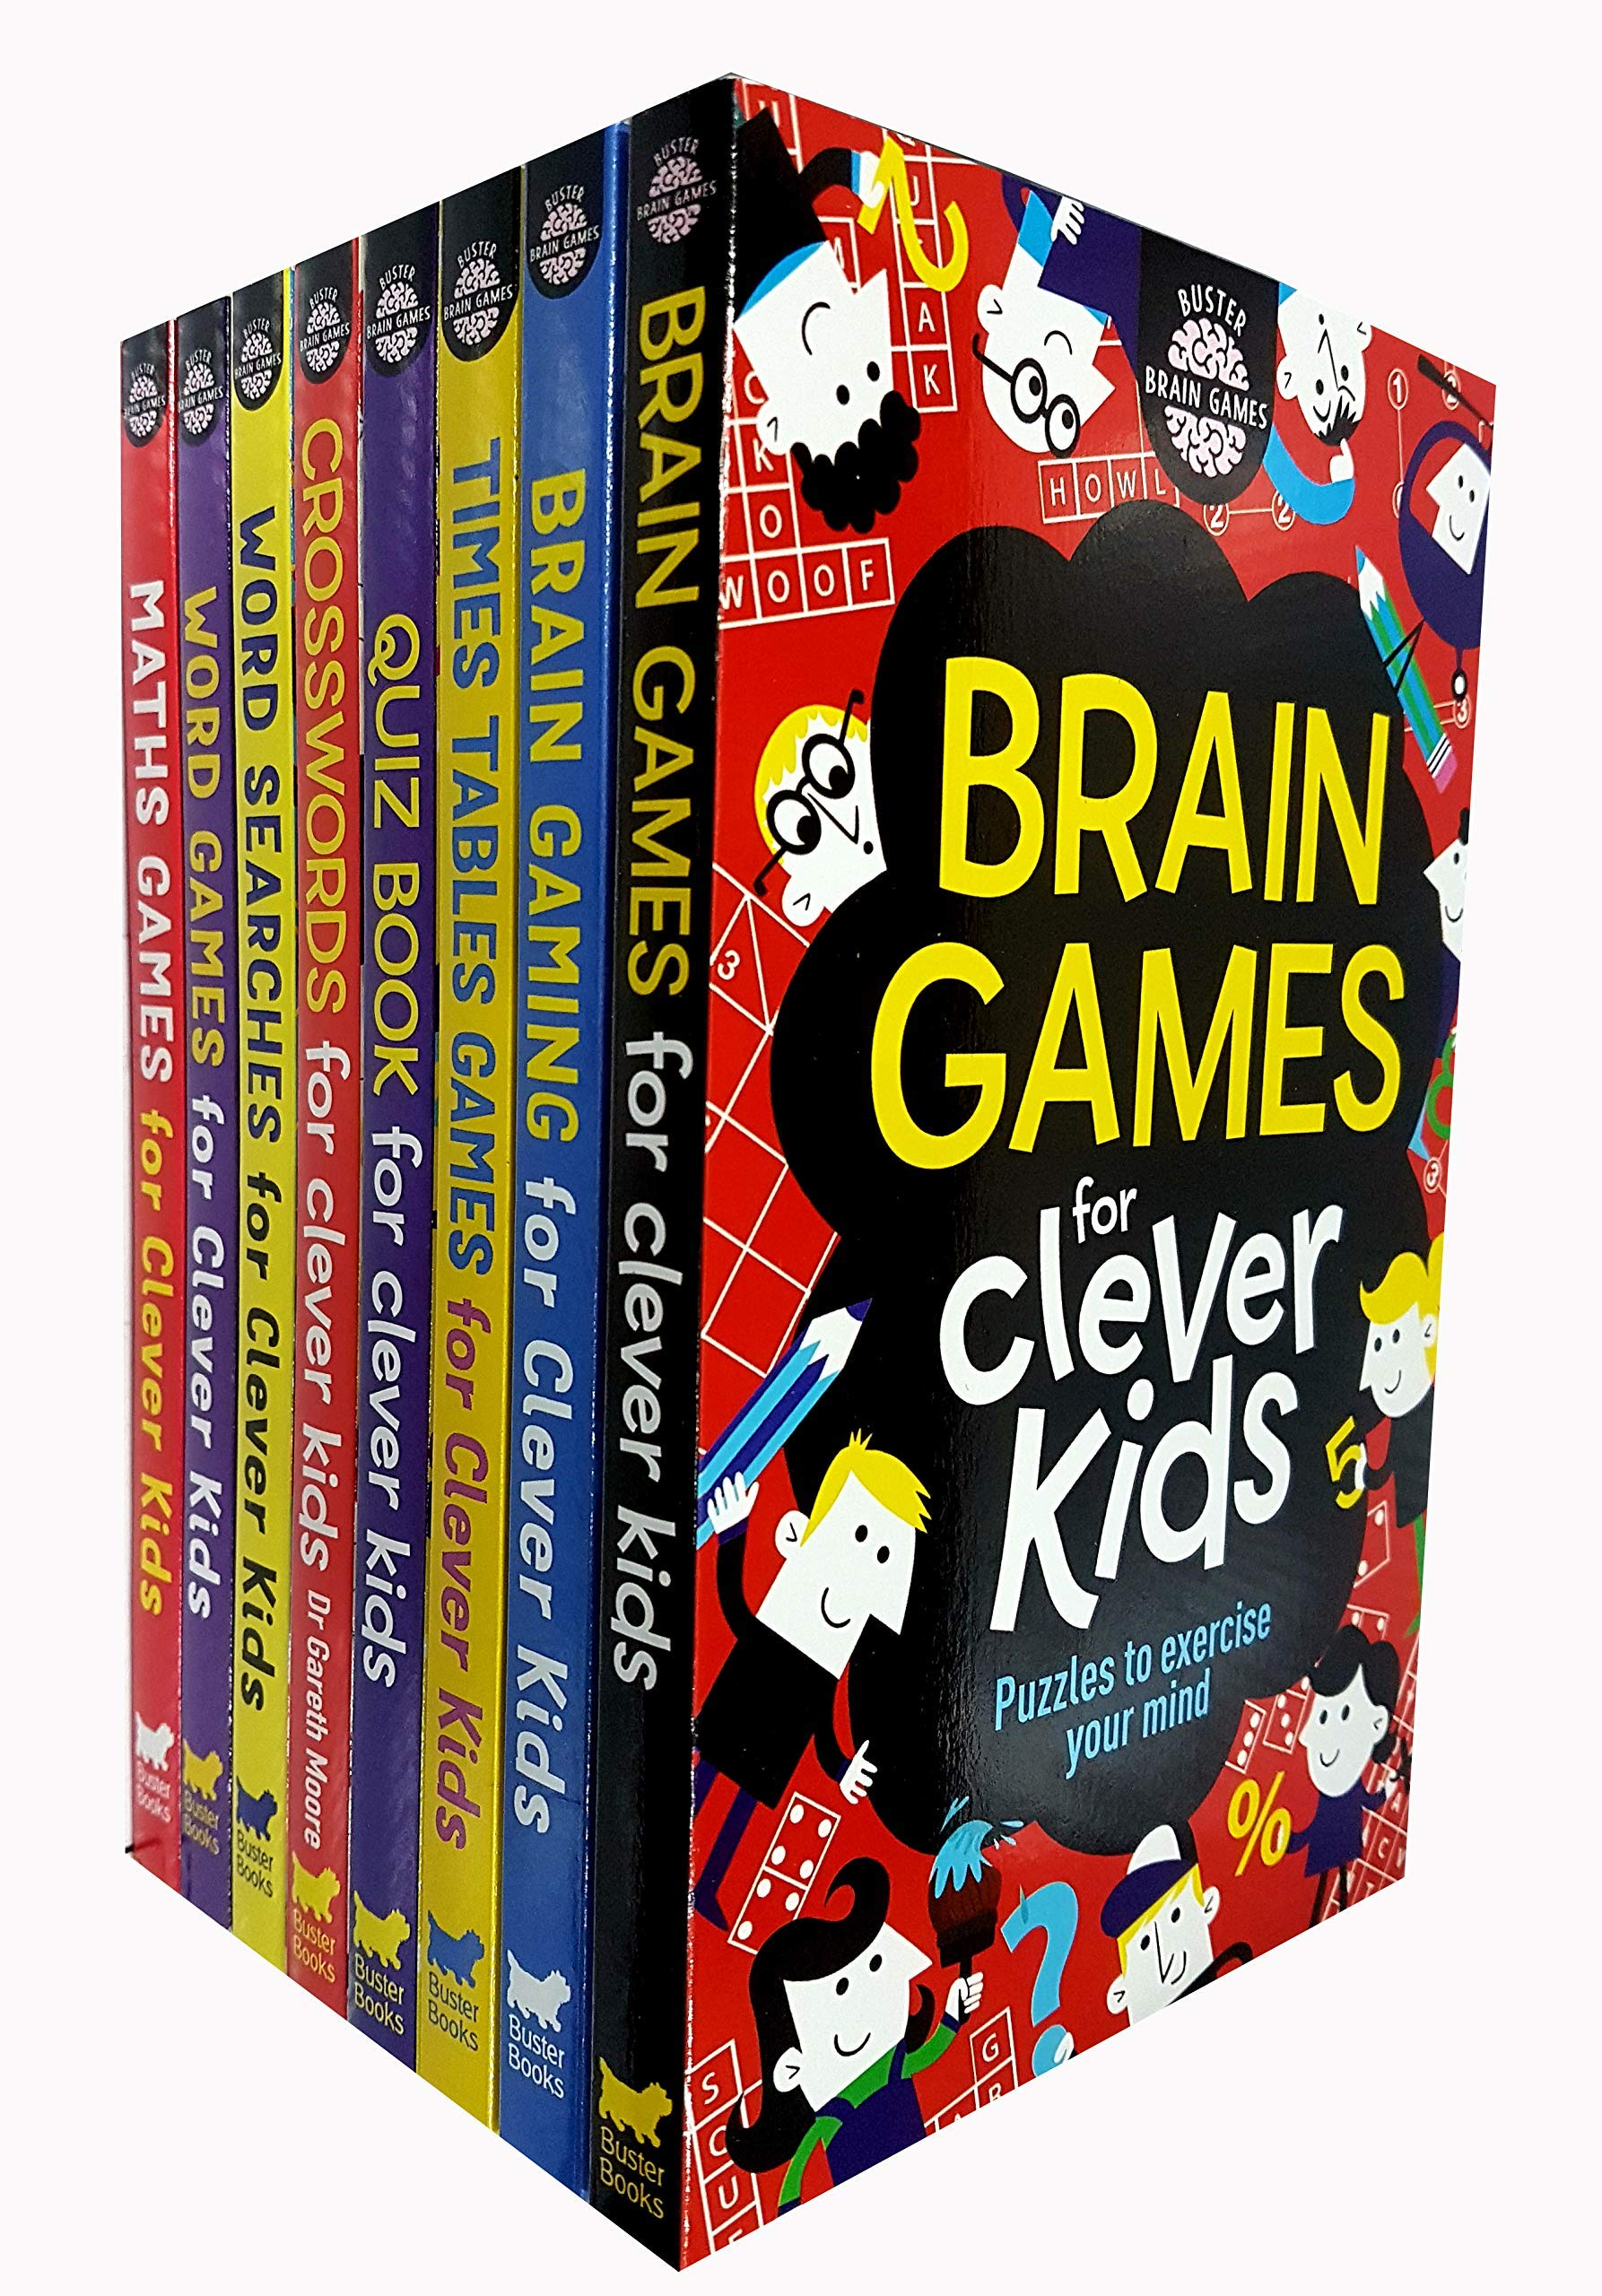 Clever Kids Brain Games 8 Books Collection Set (Brain Games,Wordsearches ,Crosswords,Quiz Book,Maths Games,Brain Gaming,Times Tables Games,Word Games)